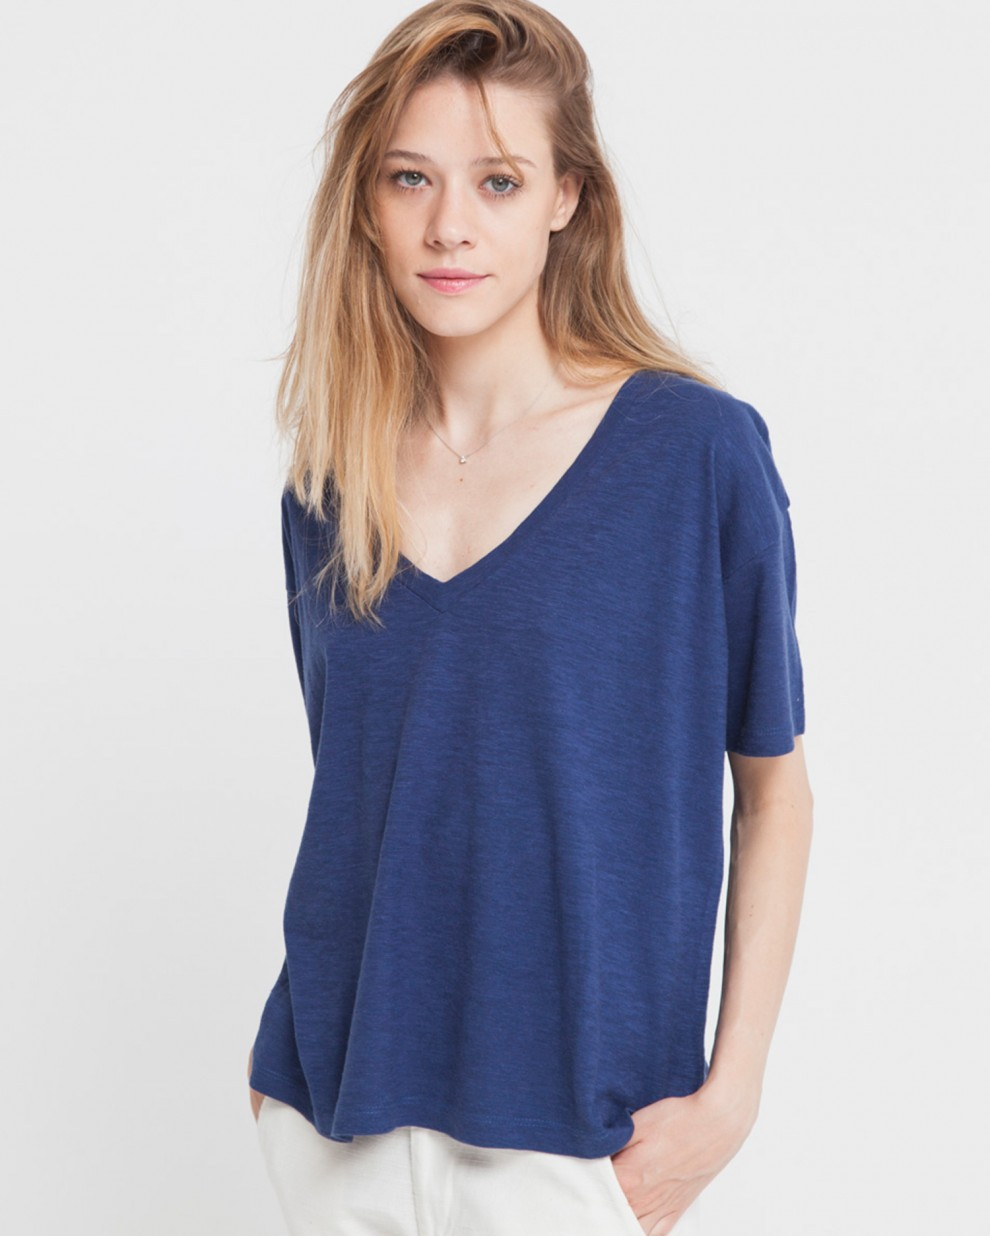 Camiseta Hemp Chloe Blue